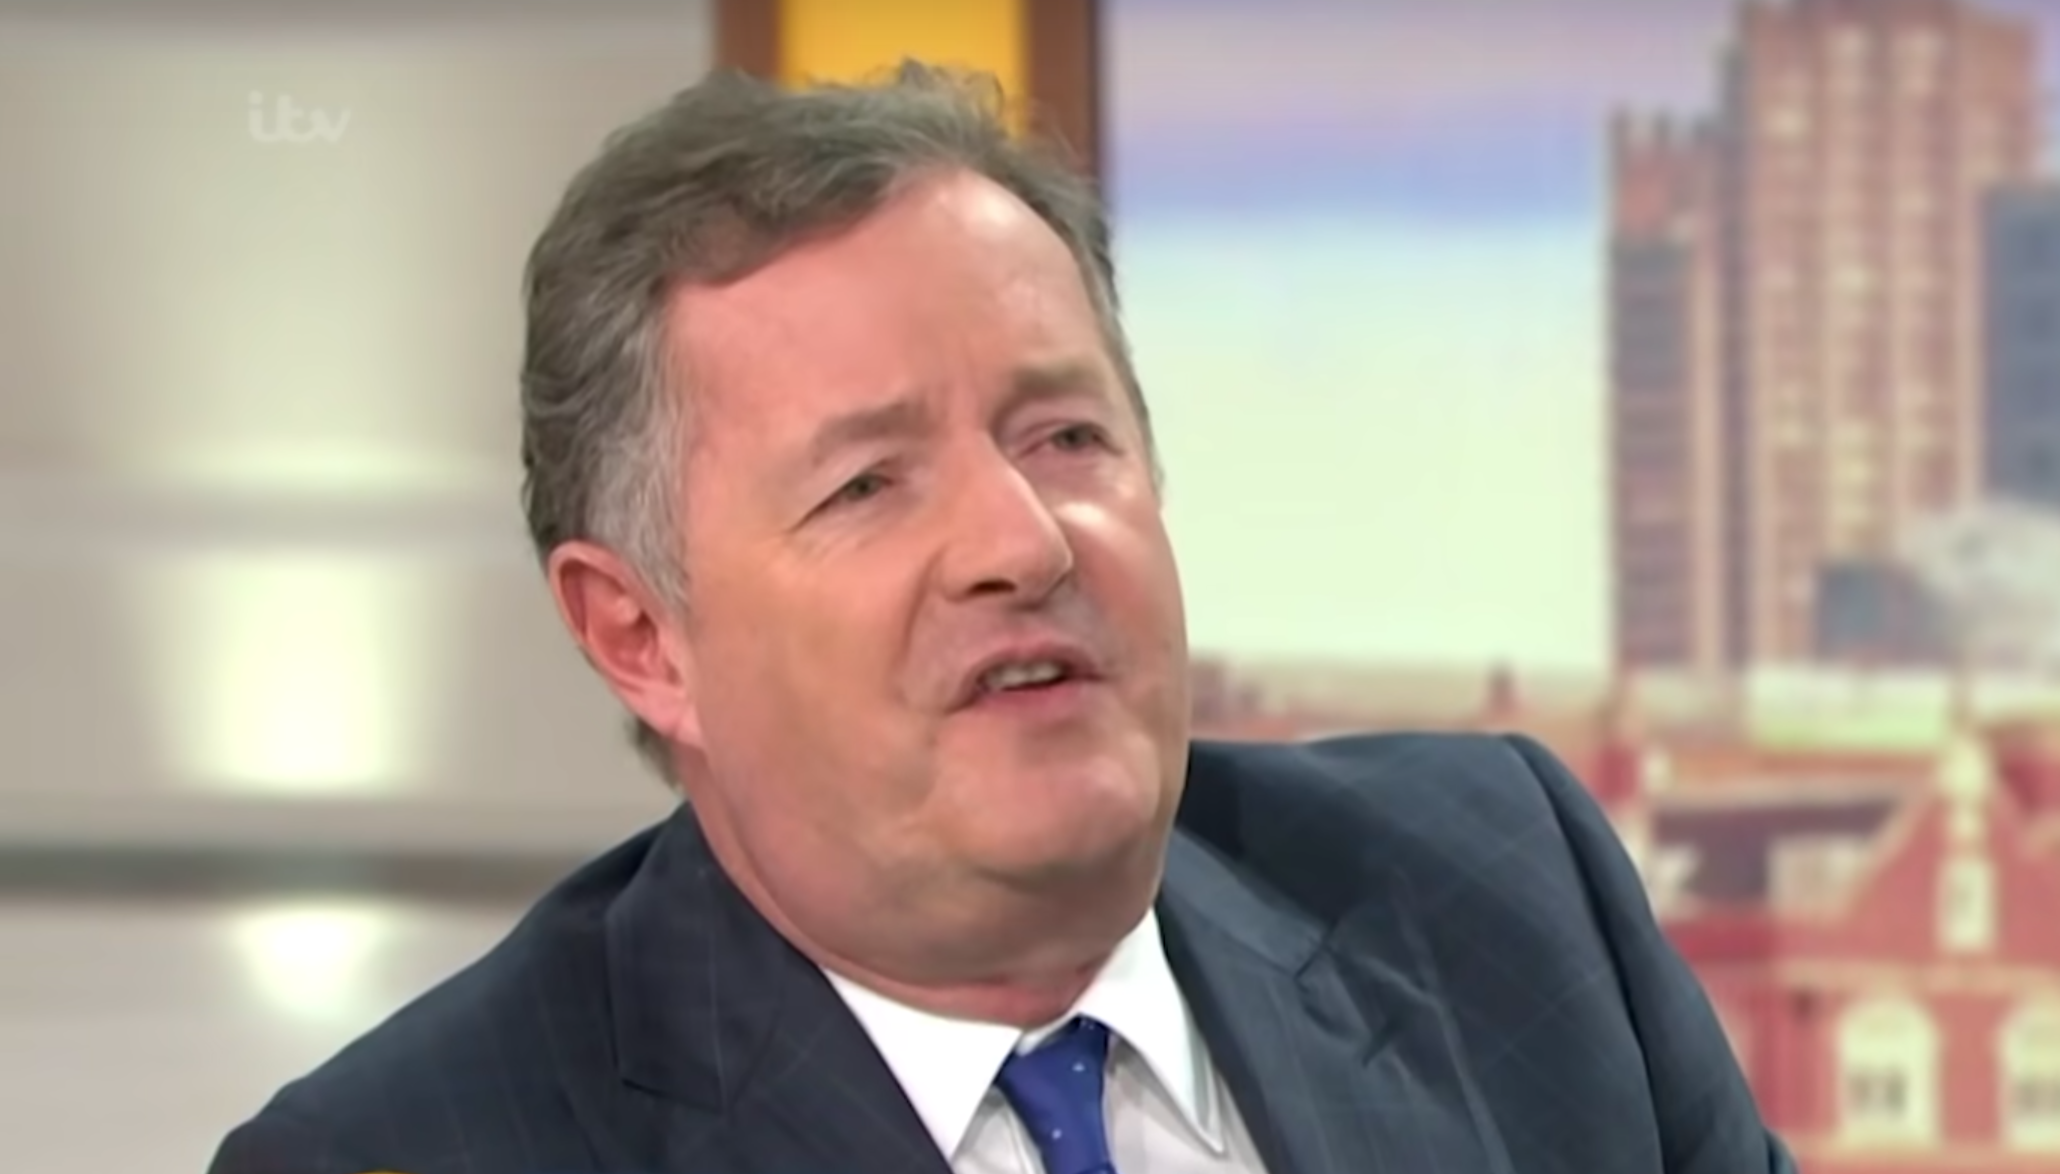 ITV defends Piers Morgan in apology statement about him 'mocking' Chinese language